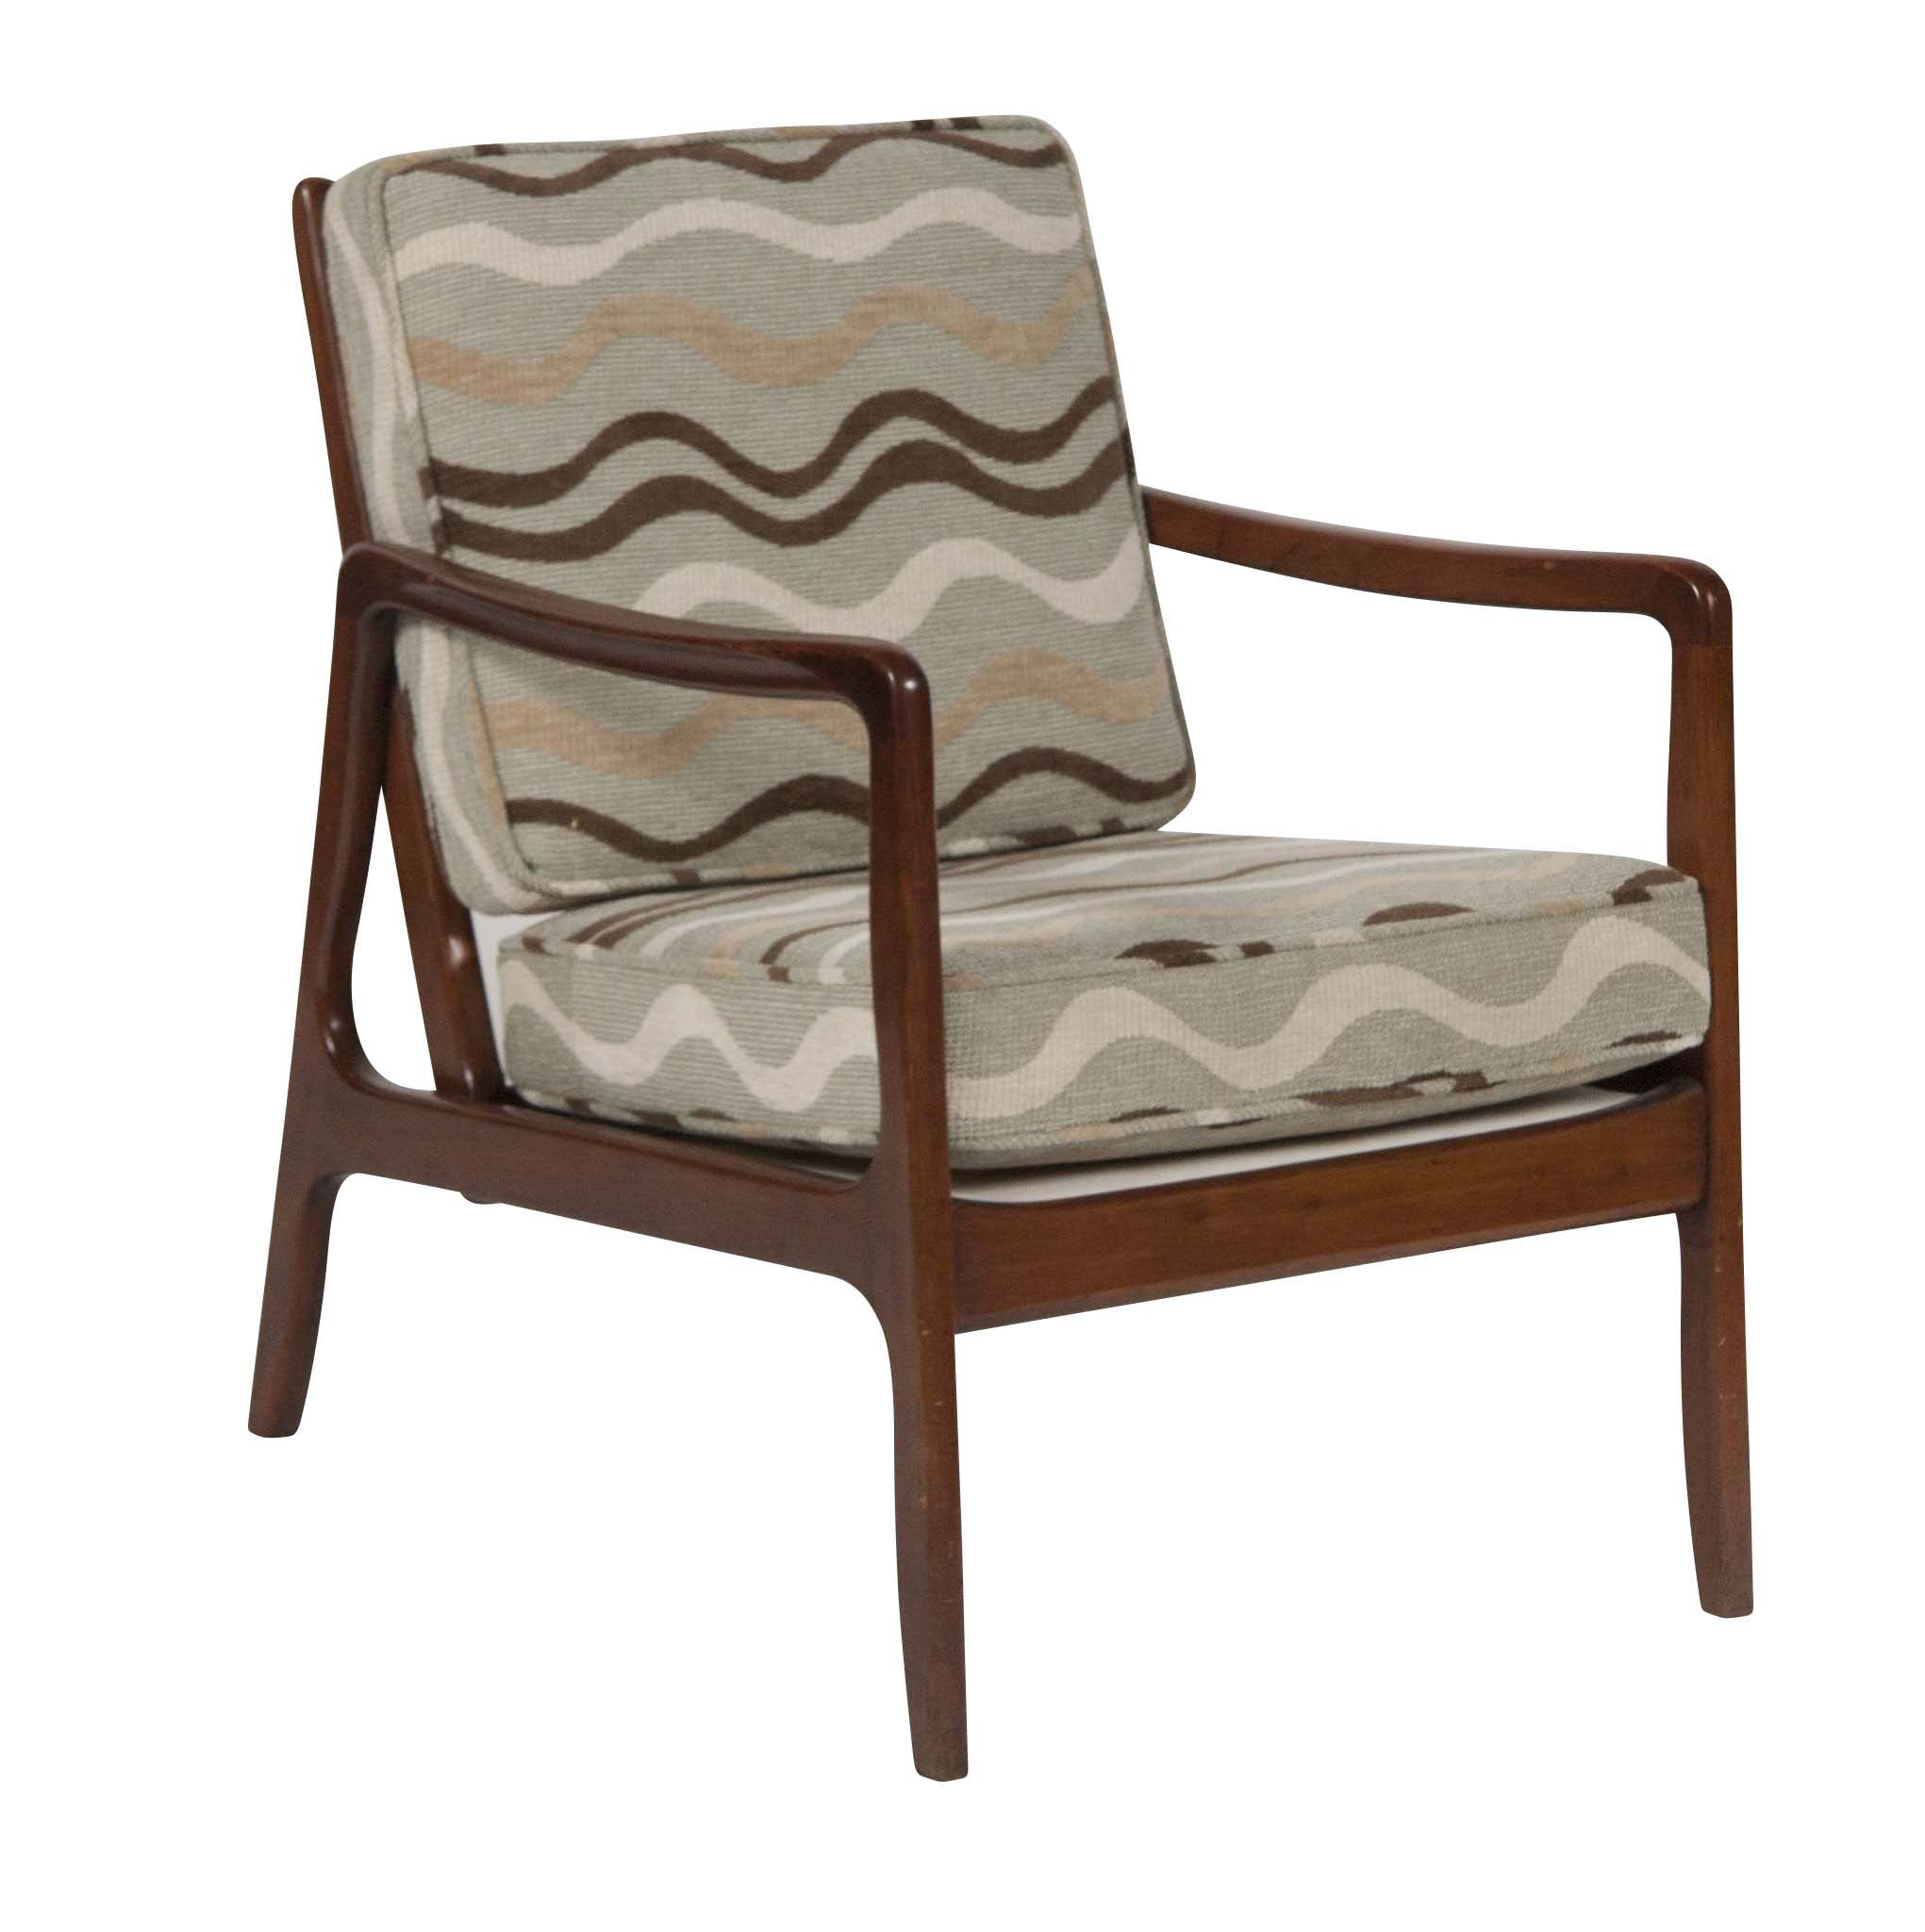 High Quality Danish Modern Armchair